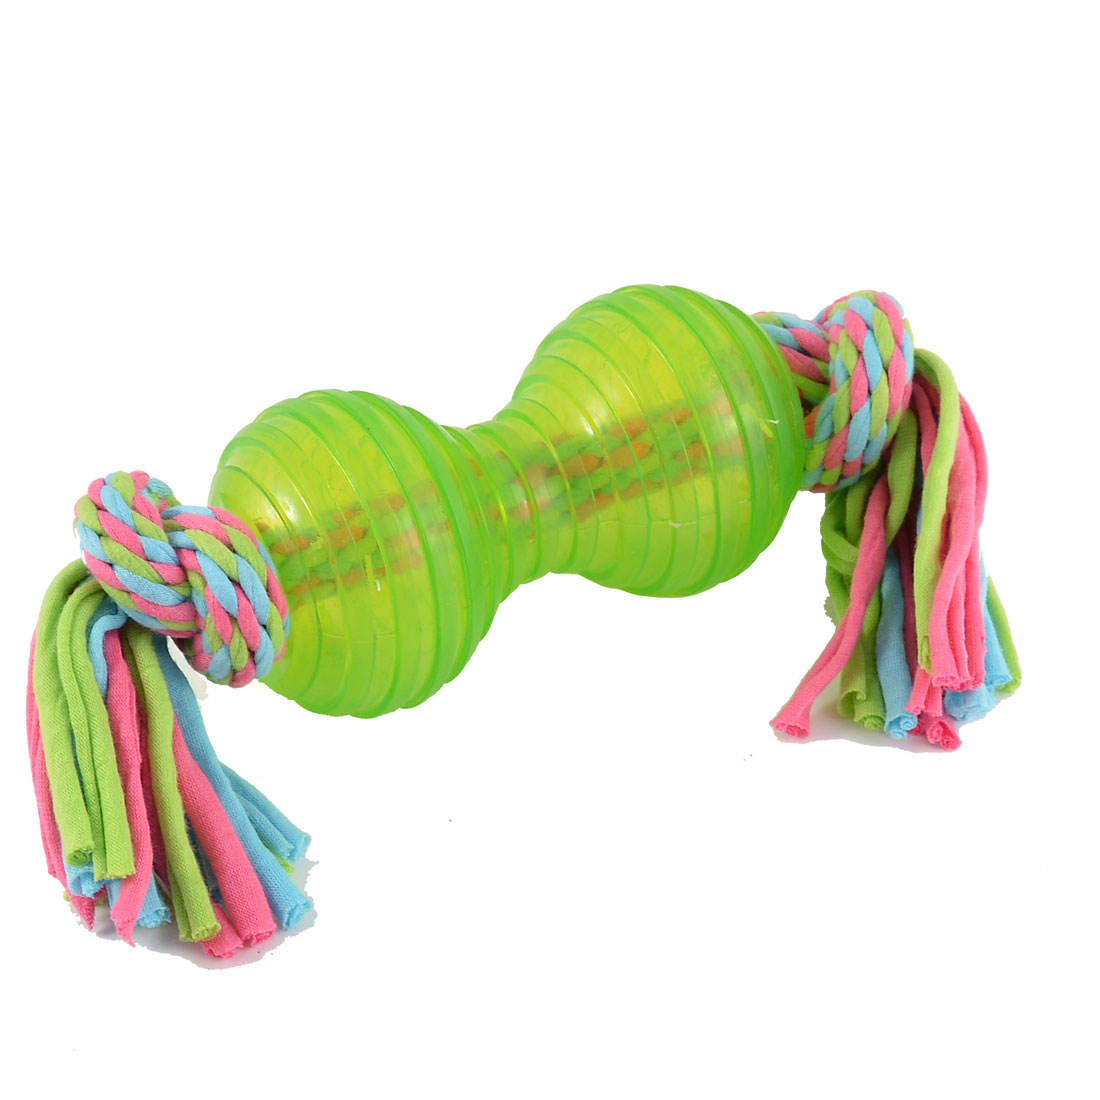 Home Pet Puppy Dog Cat Teeth Cleanning Chew Ball Knotted Braided Rope